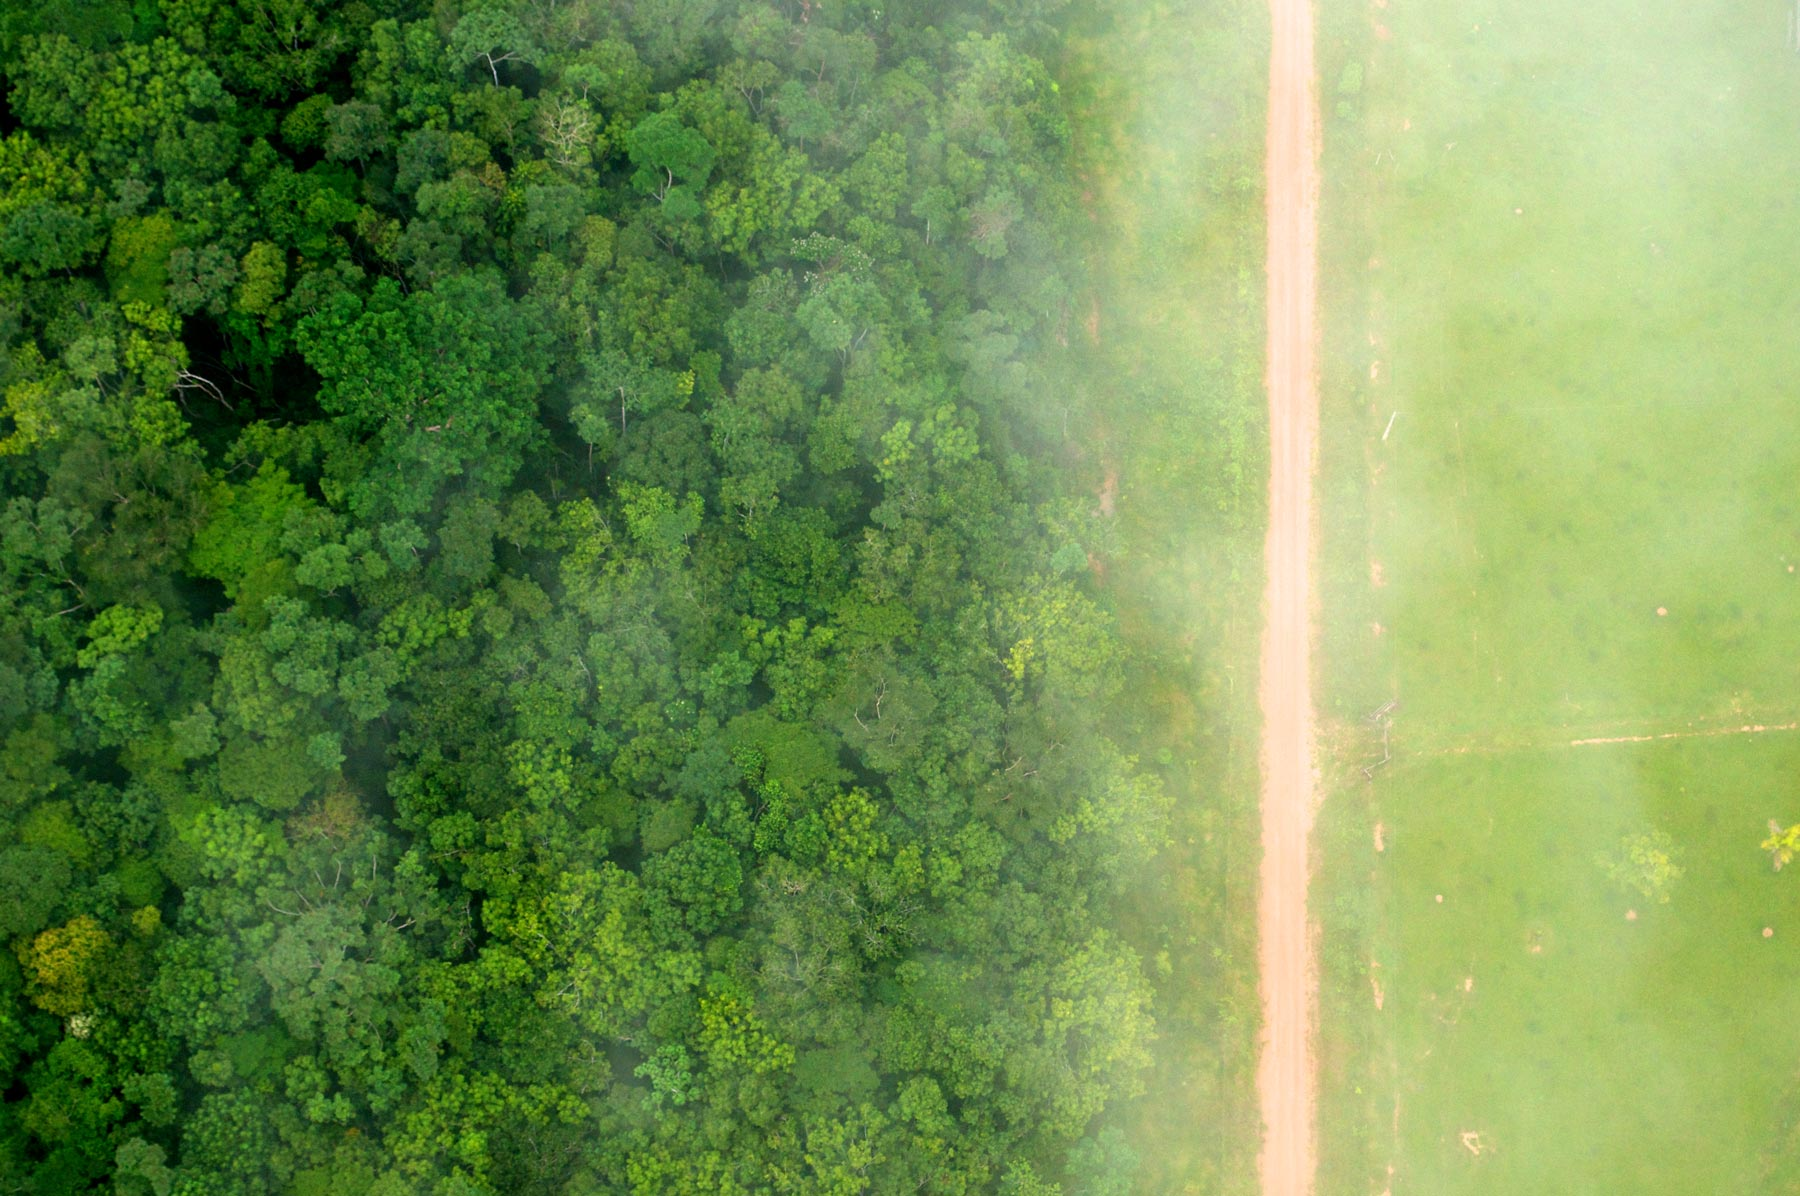 Photo by Kate Evans for Center for International Forestry Research (CIFOR)/Flickr